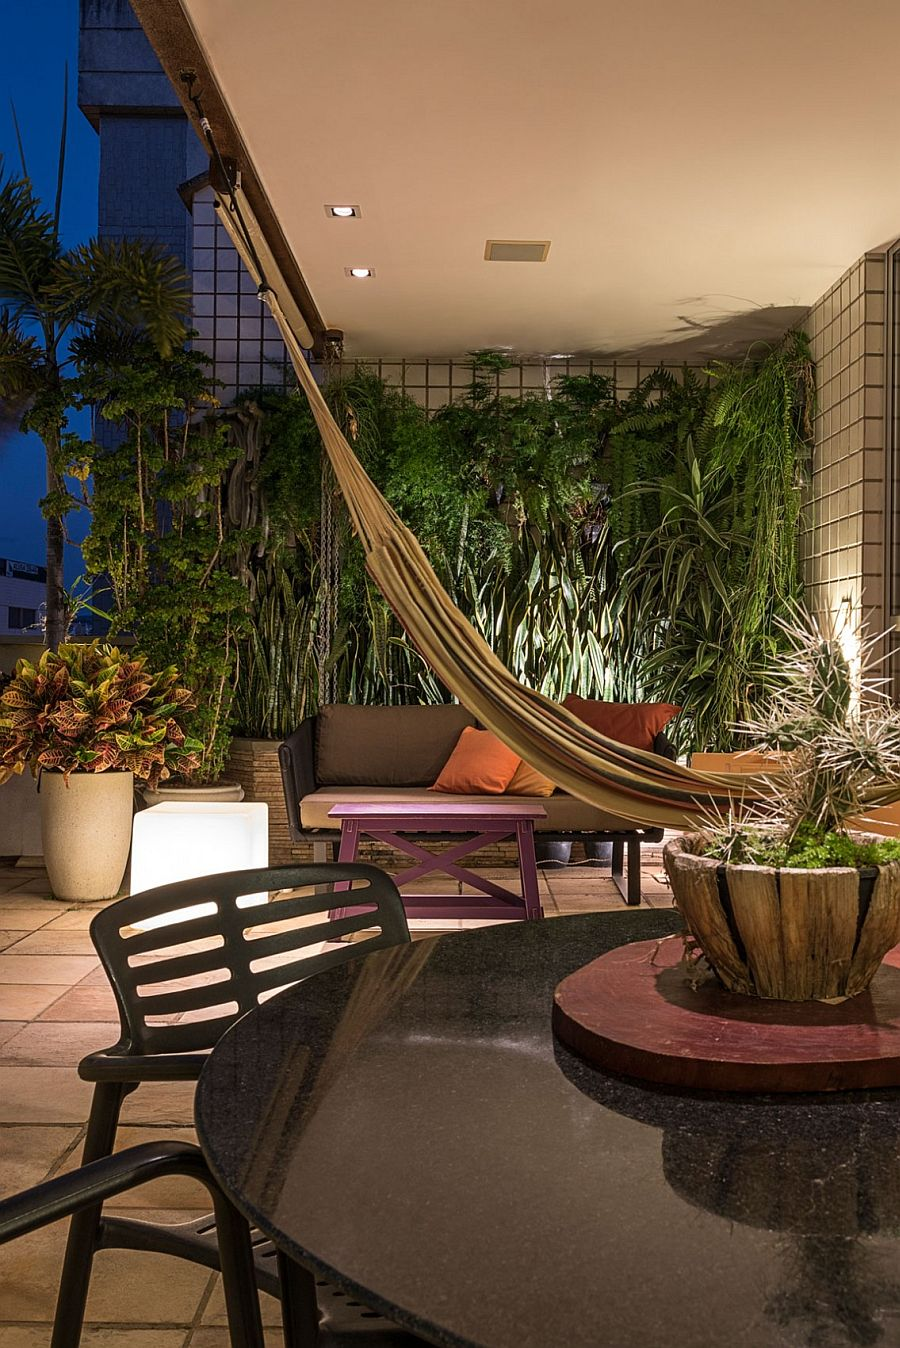 Natural greenery and hammock create an urban retreat on the top level of the penthouse